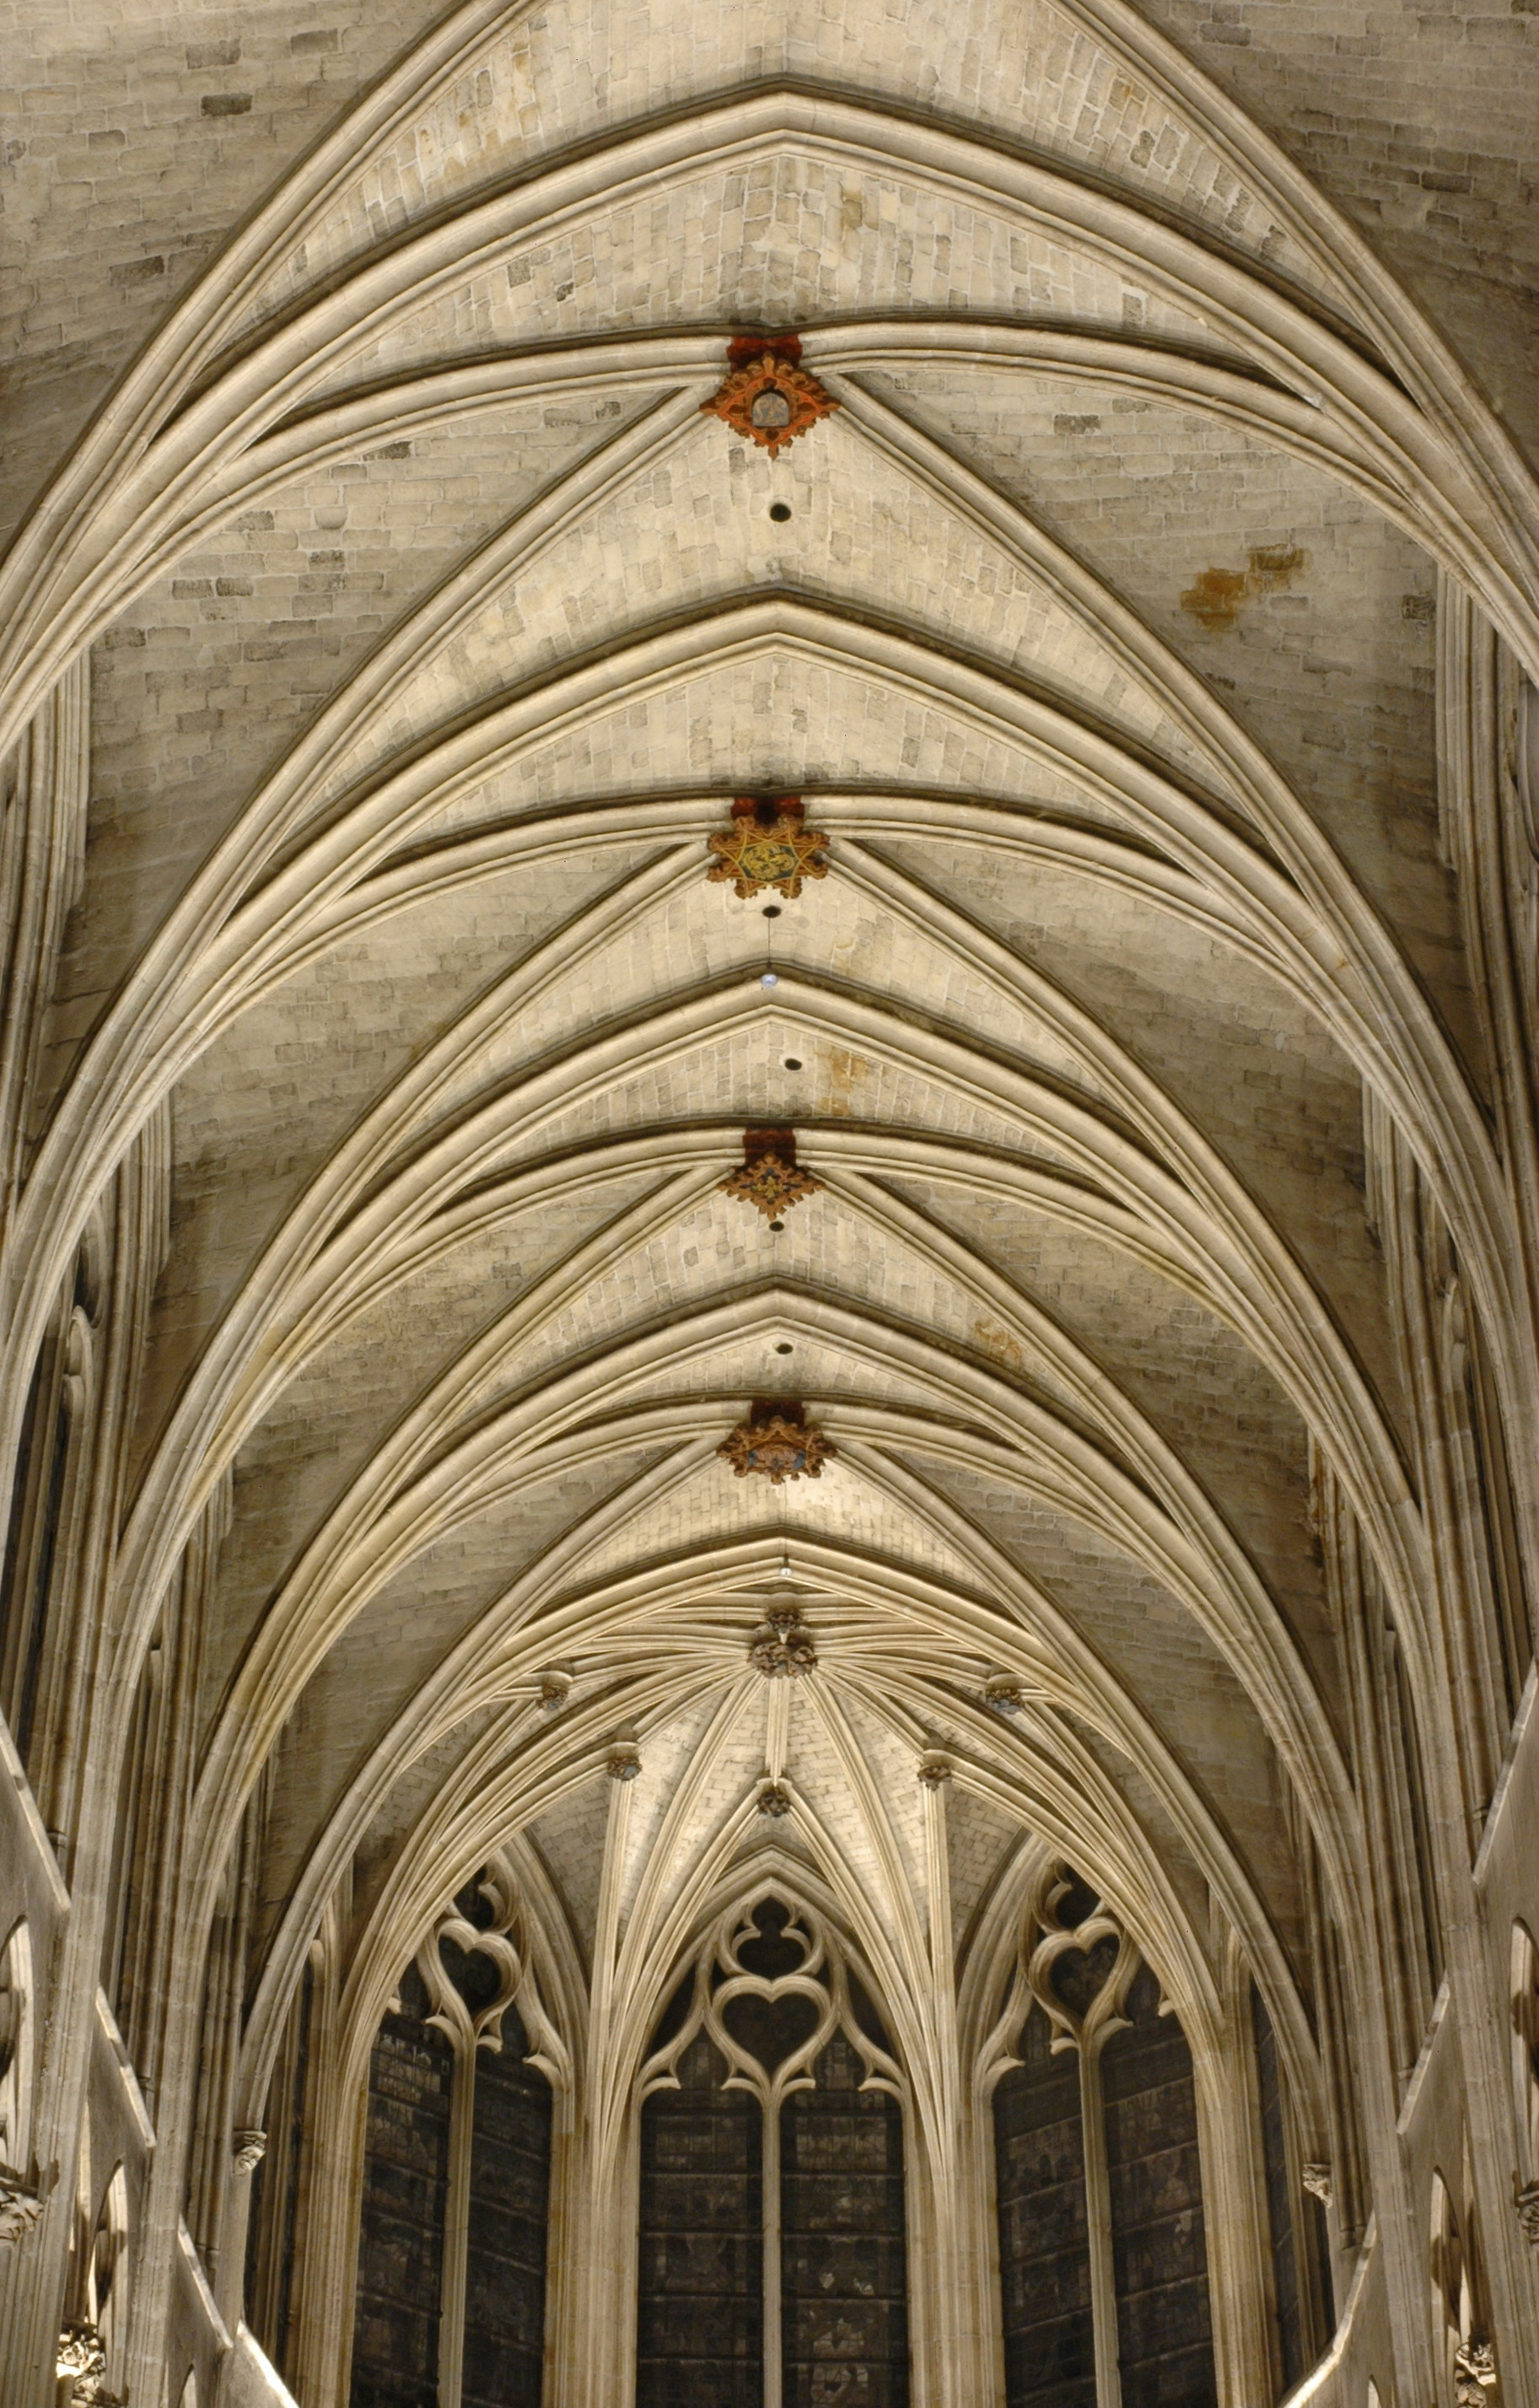 Remarkable Vault Architecture Wikipedia Largest Home Design Picture Inspirations Pitcheantrous